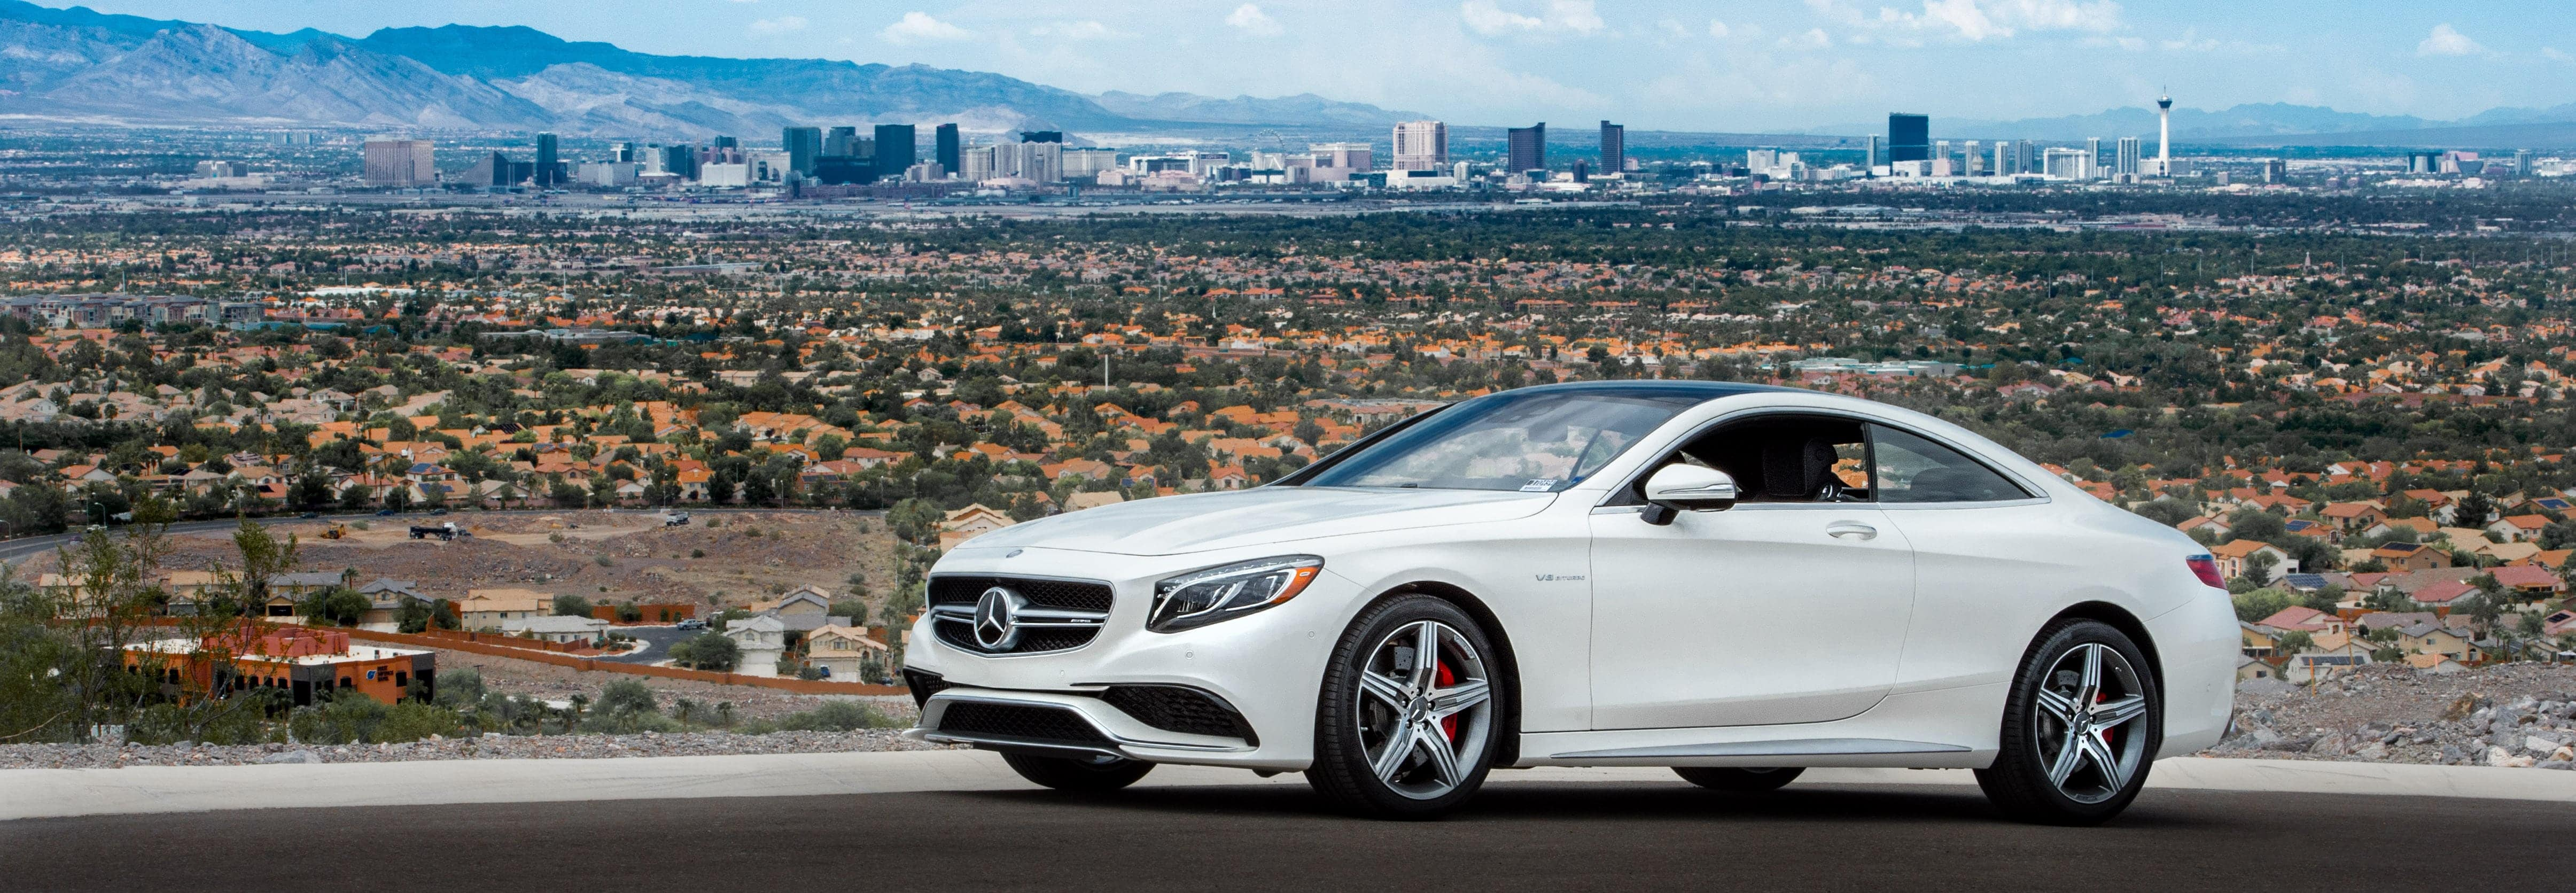 Mercedes-Benz Coupe in front of Las Vegas Skyline